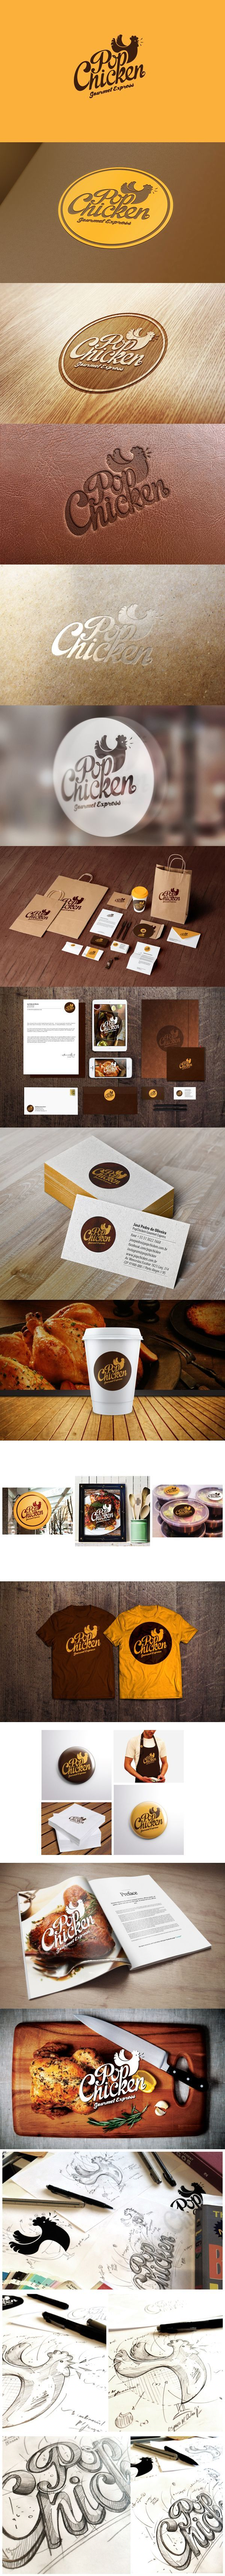 PopChicken Gourmet Express Logo and Branding